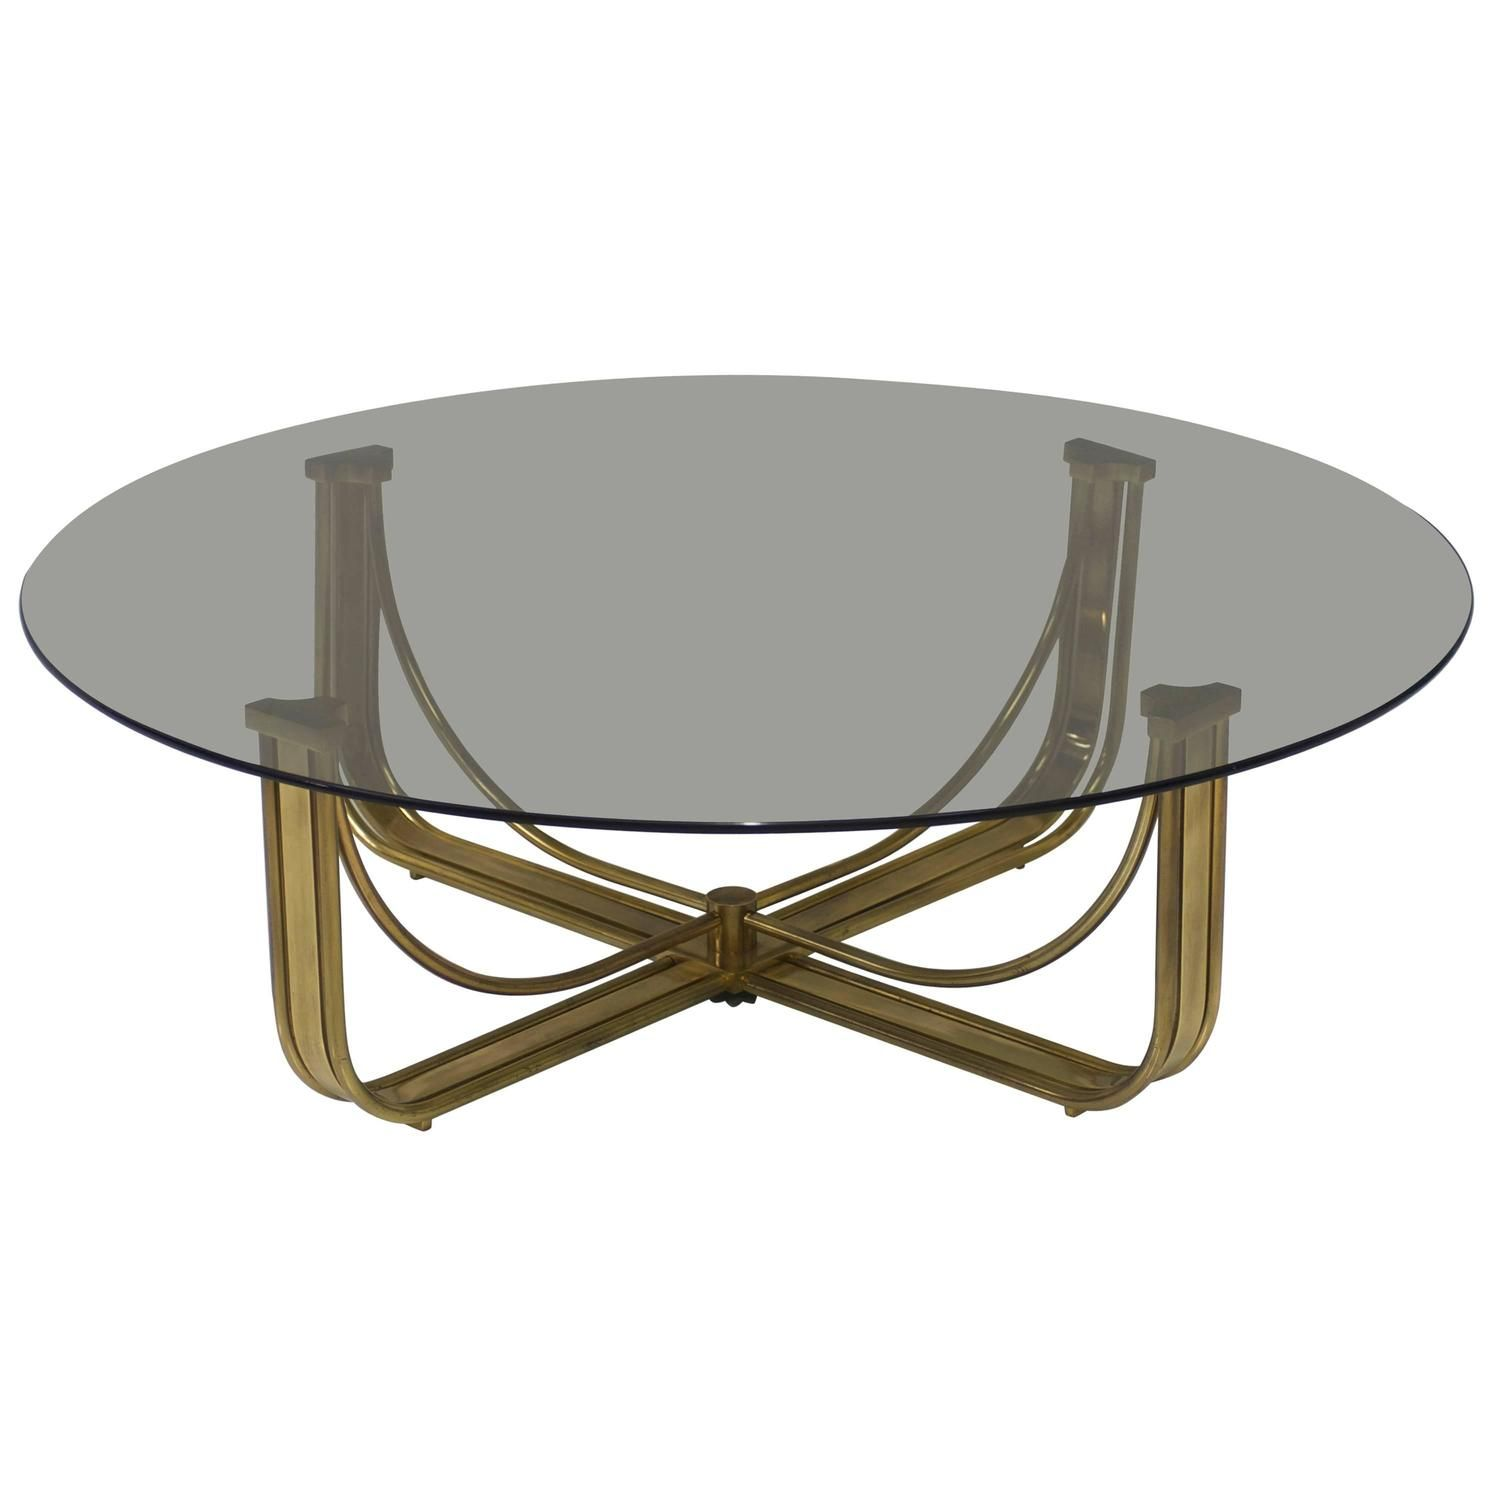 Mastercraft Brass Coffee Table With Round Smoked Grey Glass Top From A Unique Collection Of Antique And Mode Grey Glass Coffee Table Brass Round Coffee Table